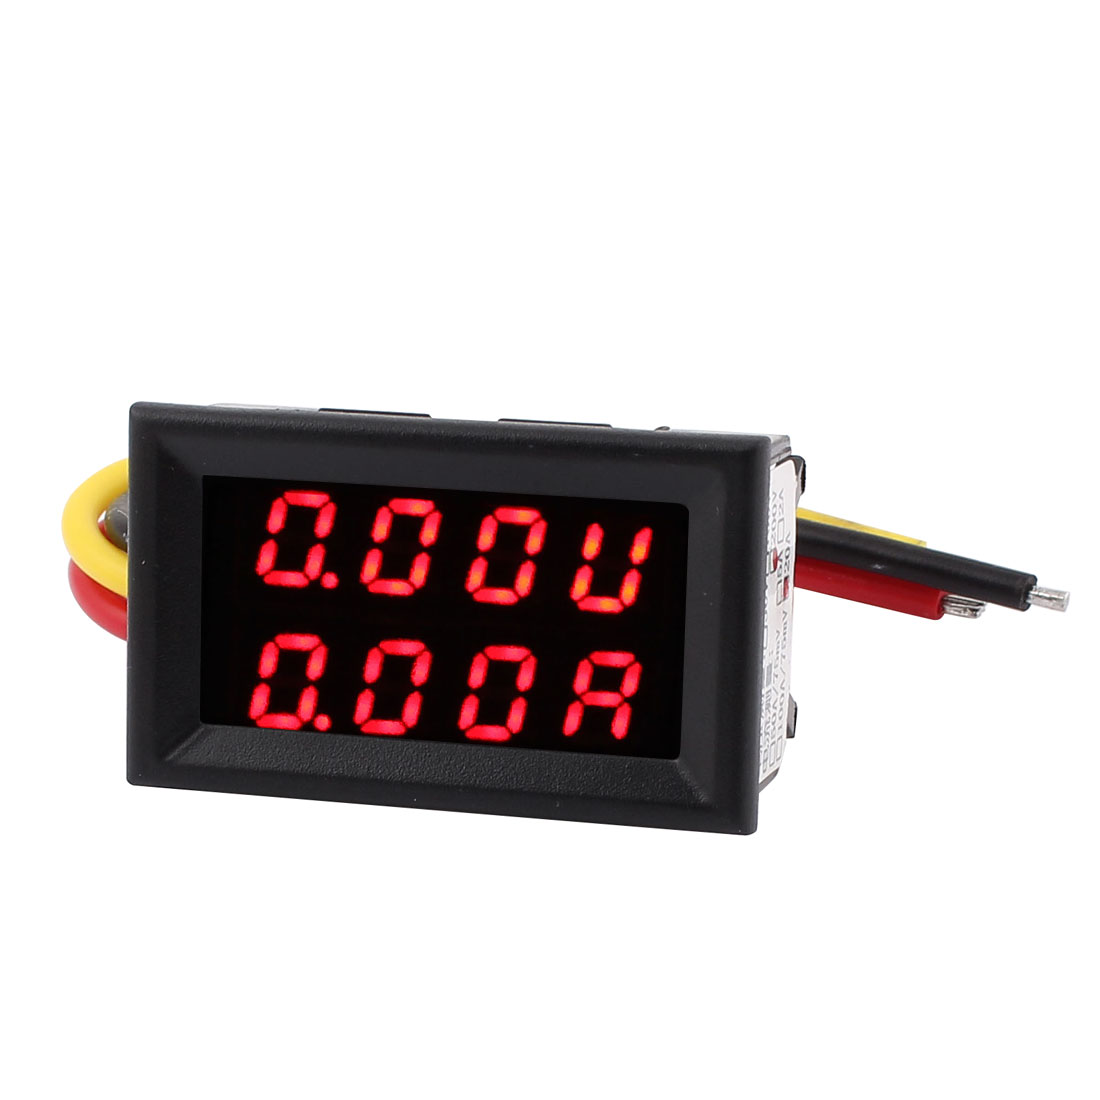 DC 0-200V 0-20A Red Red LED Dual Digital Panel Voltmeter Ammeter Meter Gauge